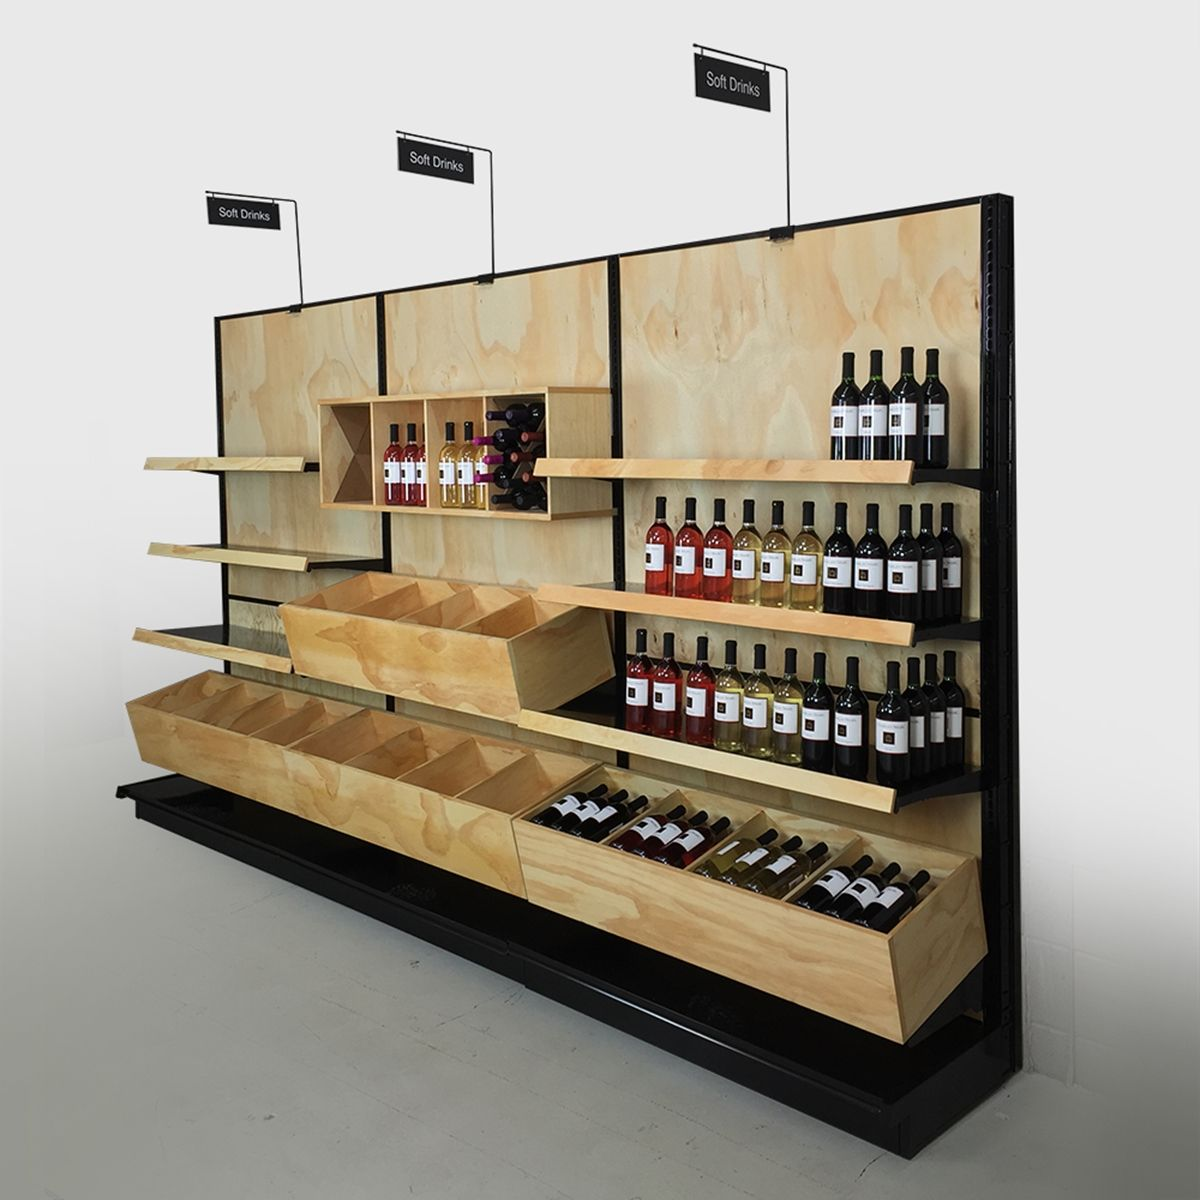 Commercial Wine Racks For Liquor Stores, Gondola Kit, 12ft